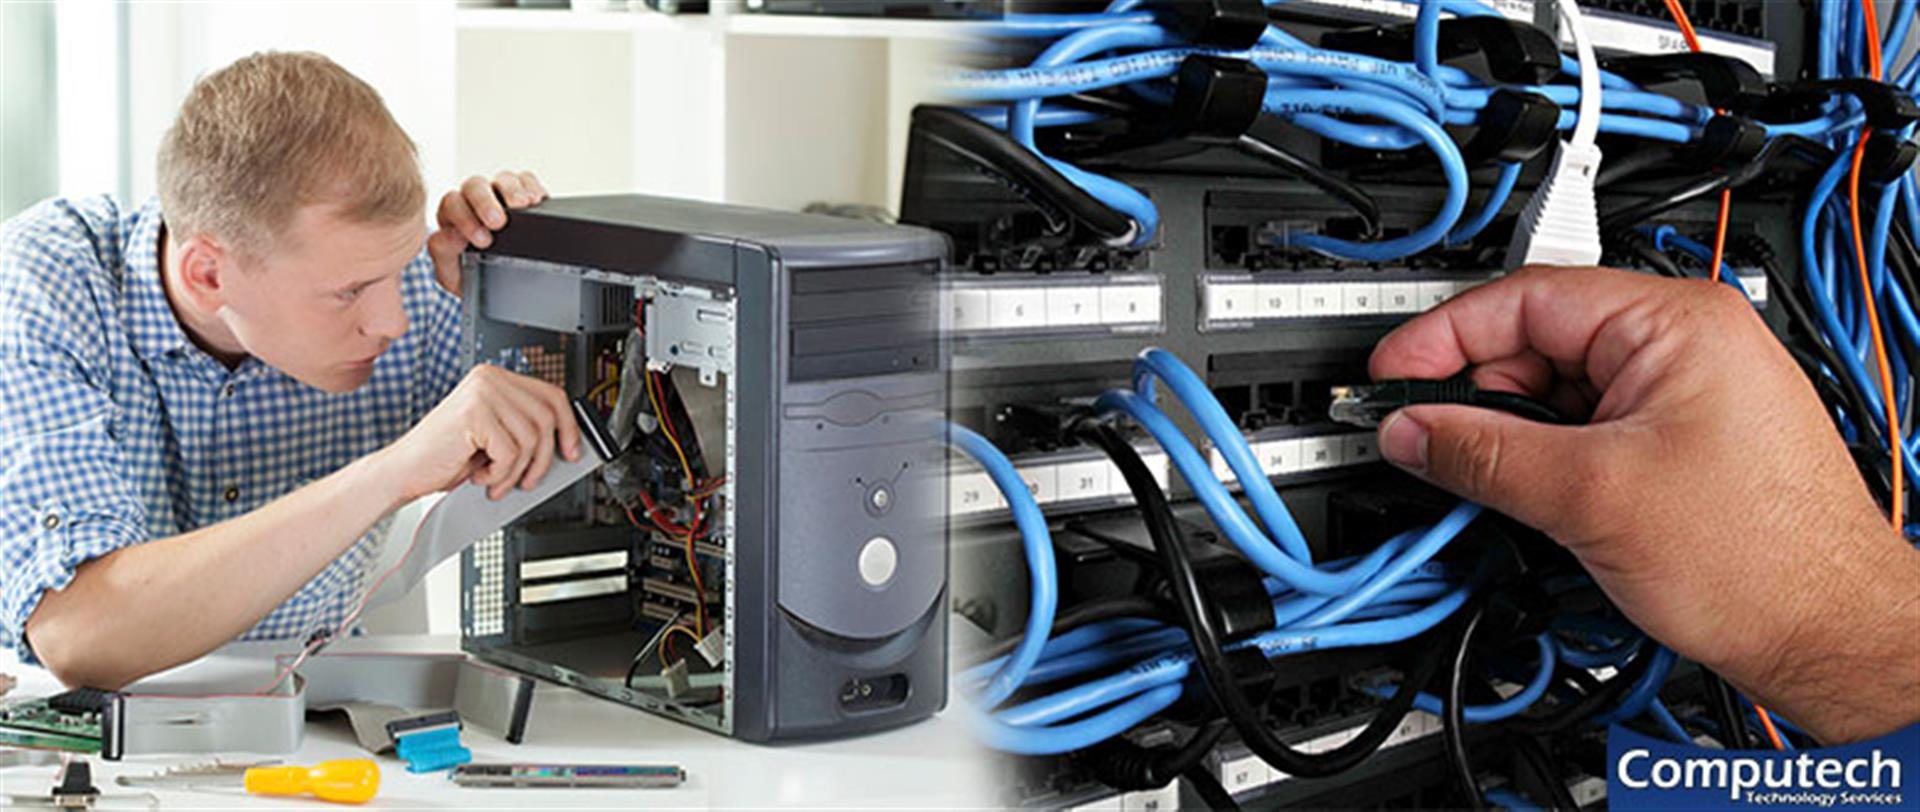 Thomaston Georgia On Site Computer PC & Printer Repair, Networks, Voice & Data Cabling Contractors